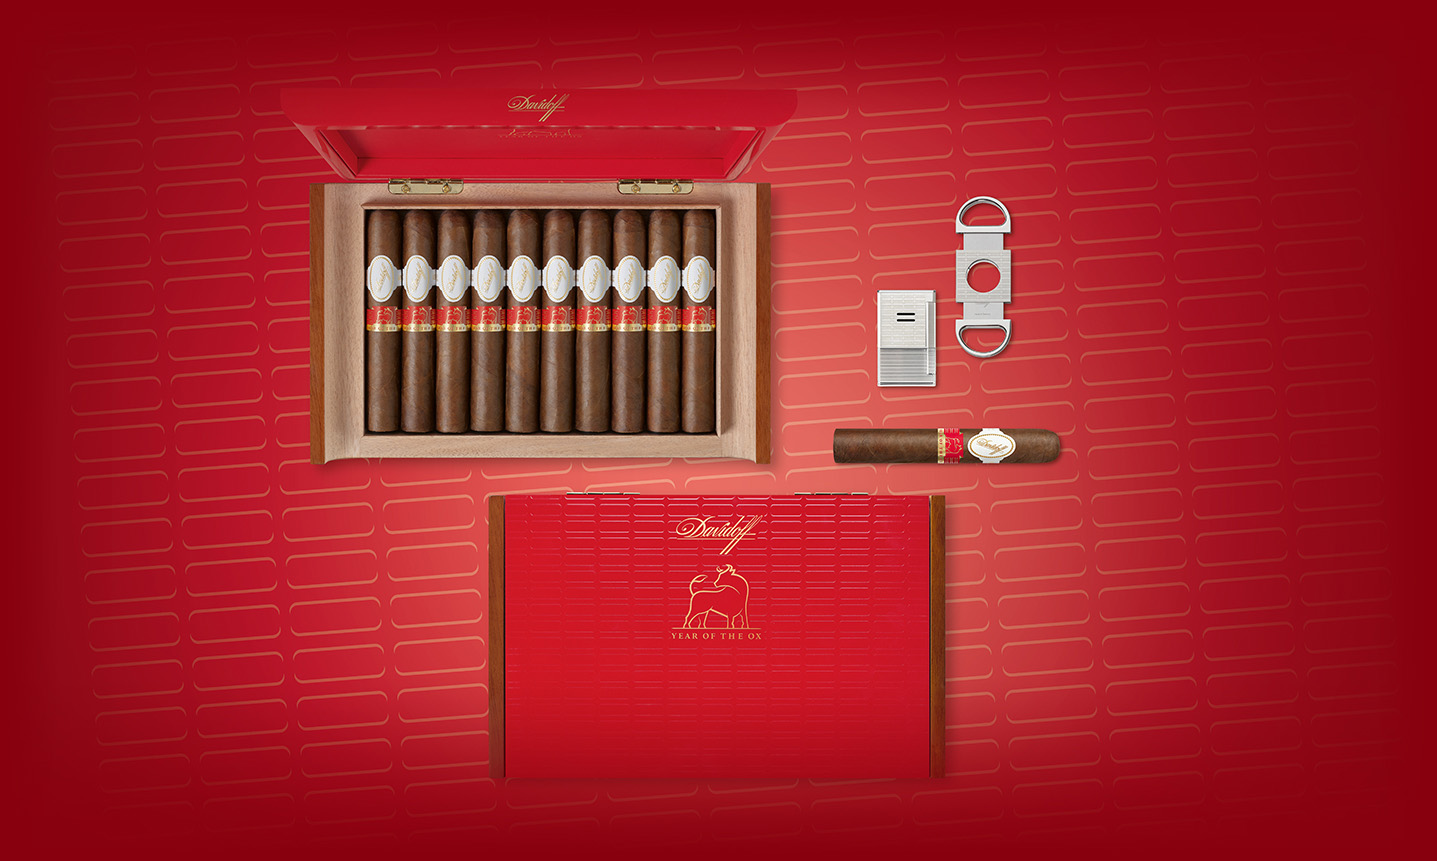 The Davidoff Cigars Year of the Ox Collection overview